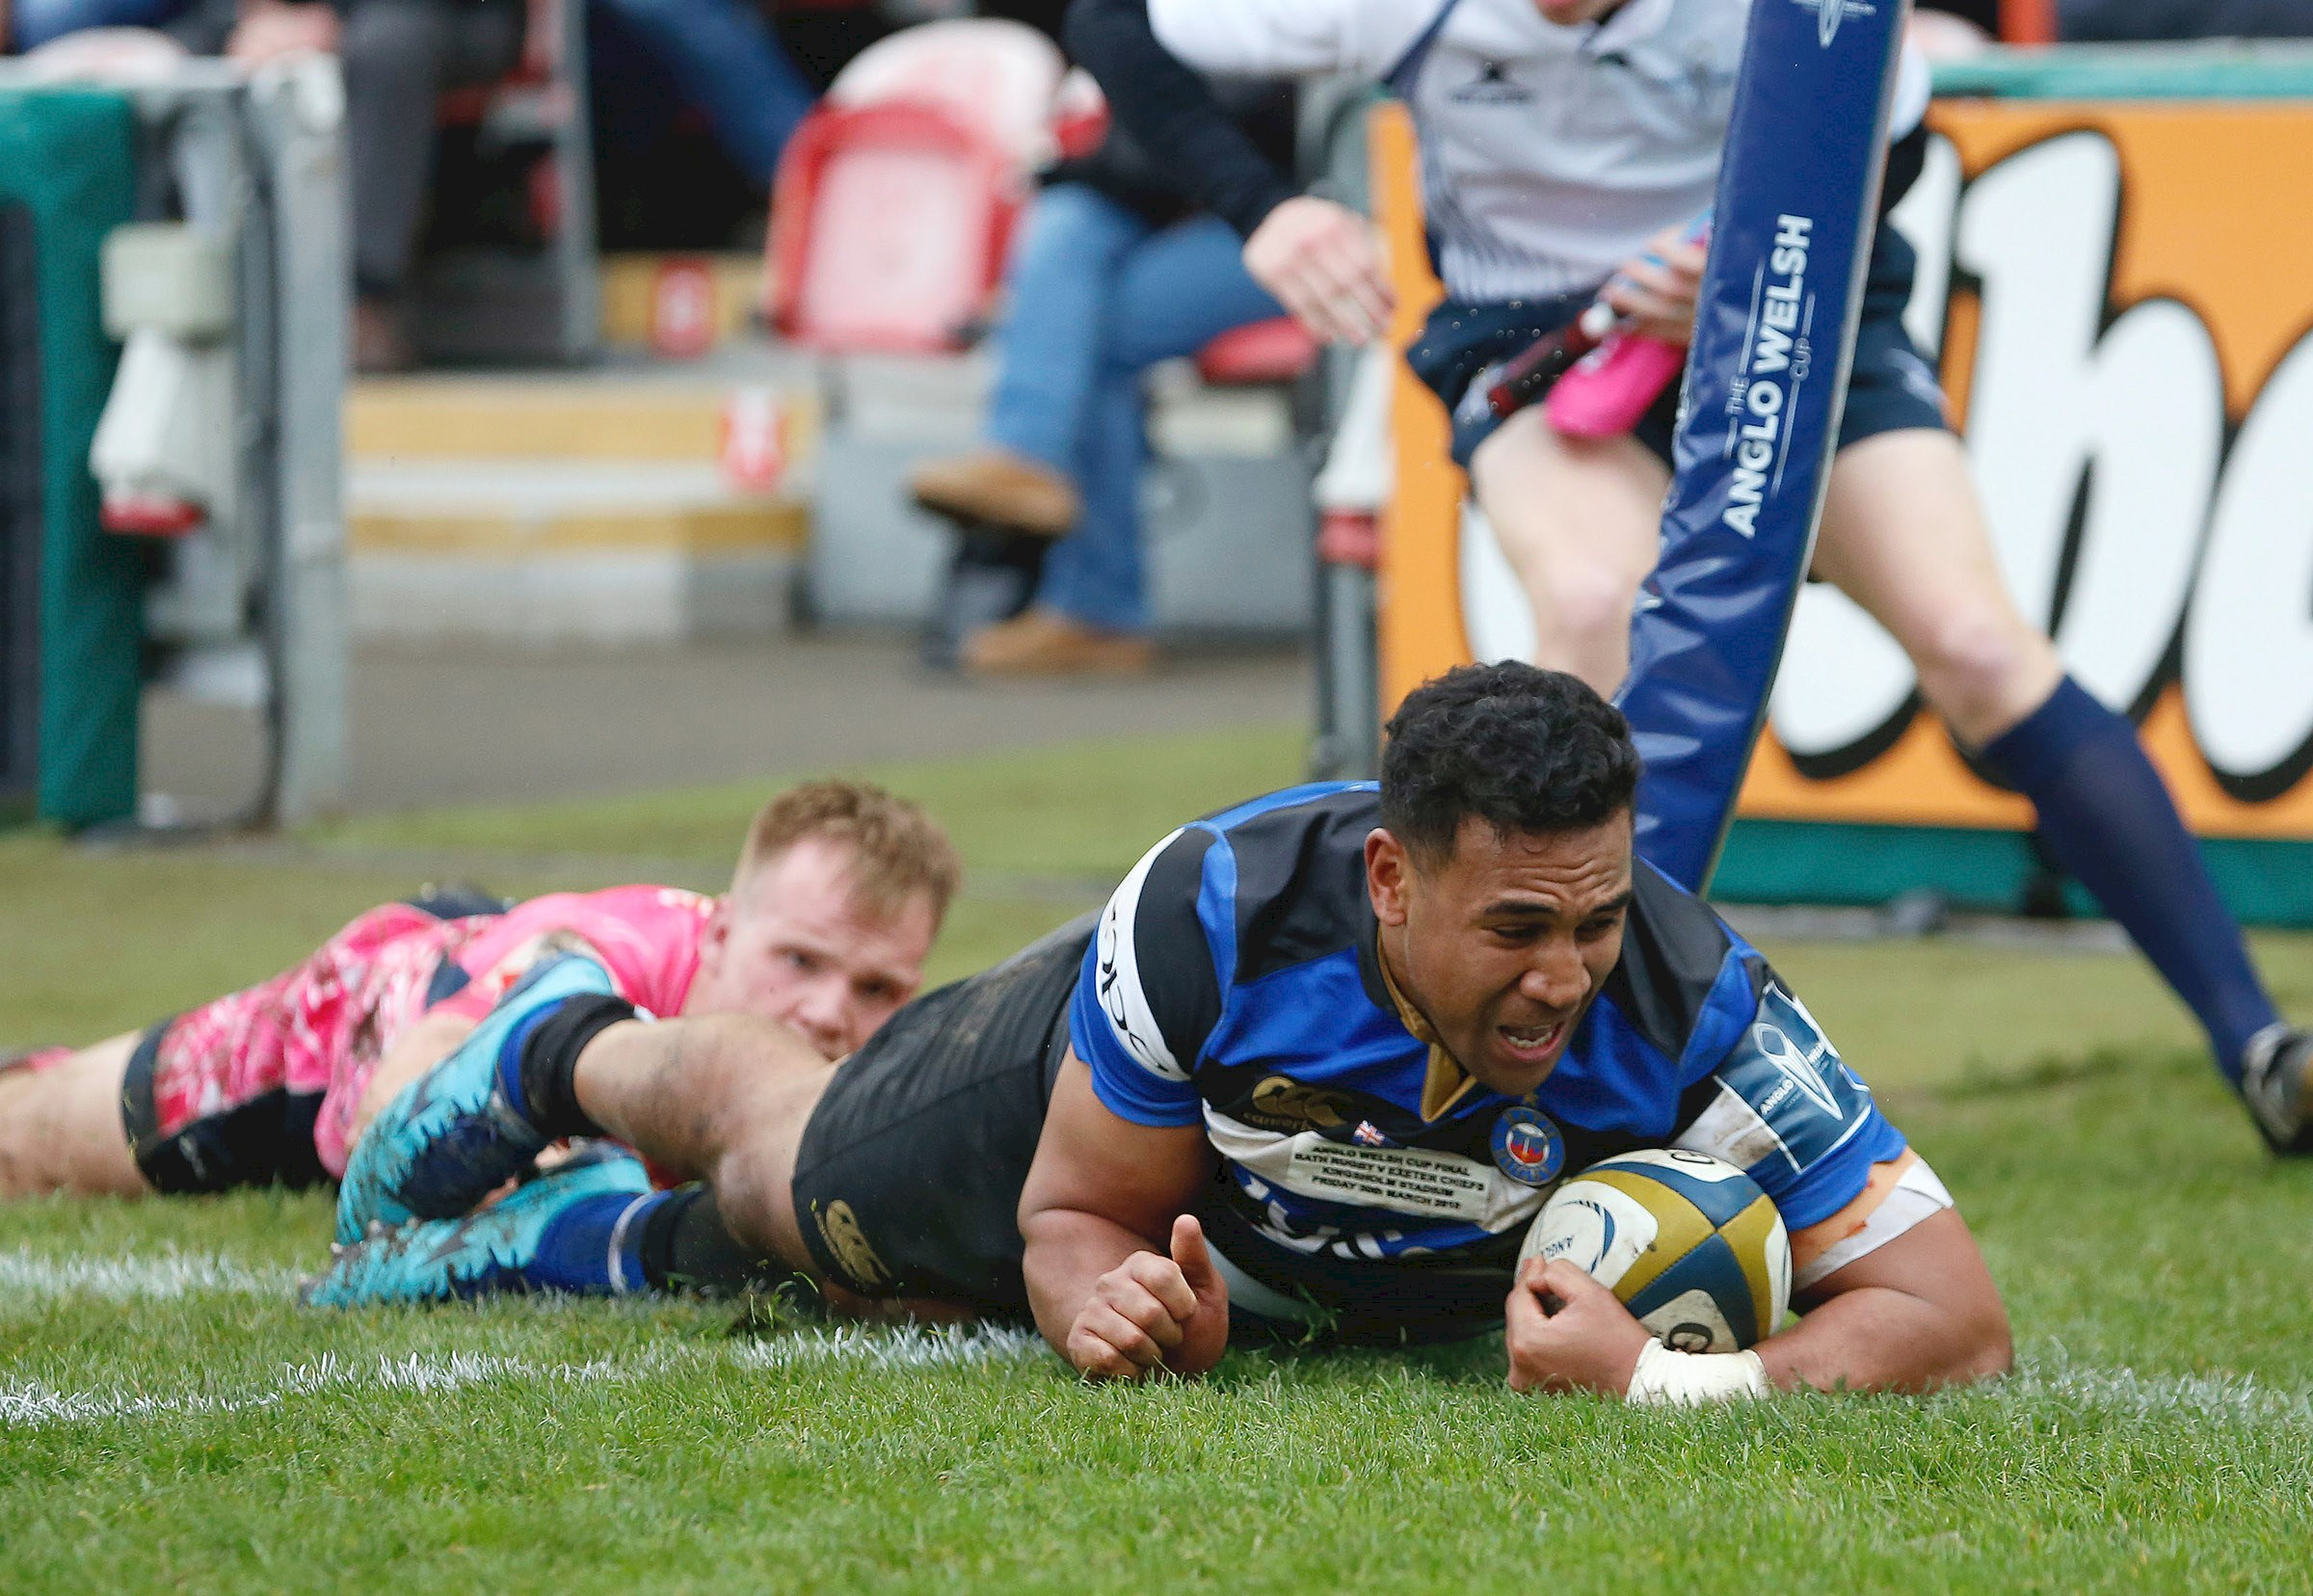 Exeter Chiefs end Bath Rugby's unbeaten Anglo-Welsh Cup campaign with victory at Kingsholm